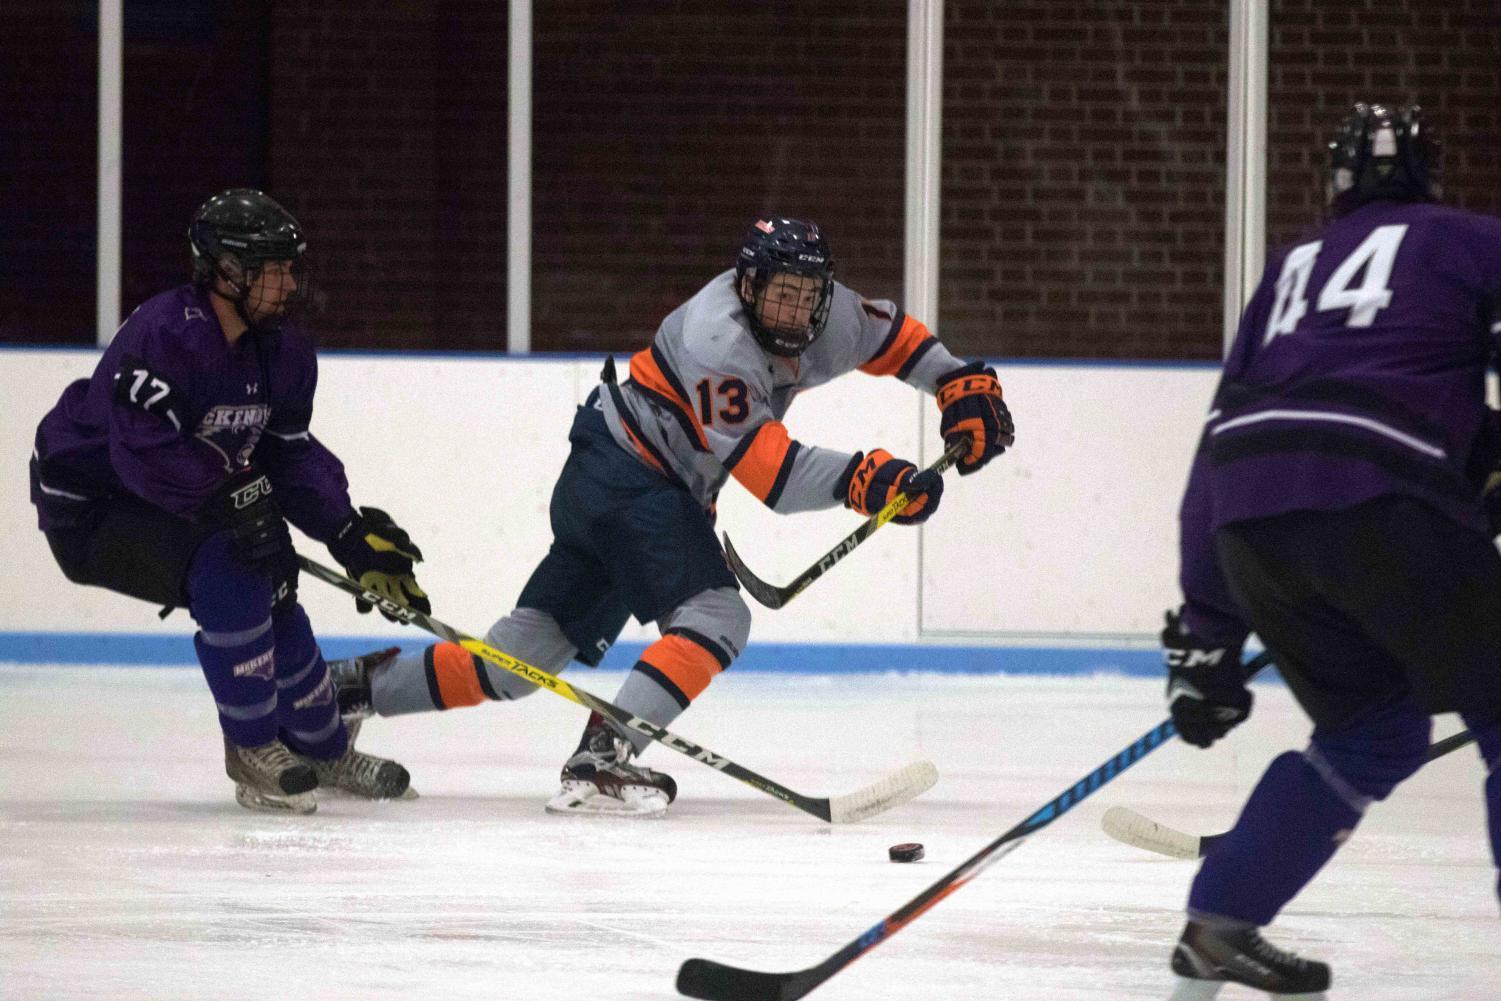 James McGing (13) passes the puck past McKendree's players to his line mate across the ice at the Ice Arena on Friday, Oct. 13th. Illinois beat McKendree 4-2.